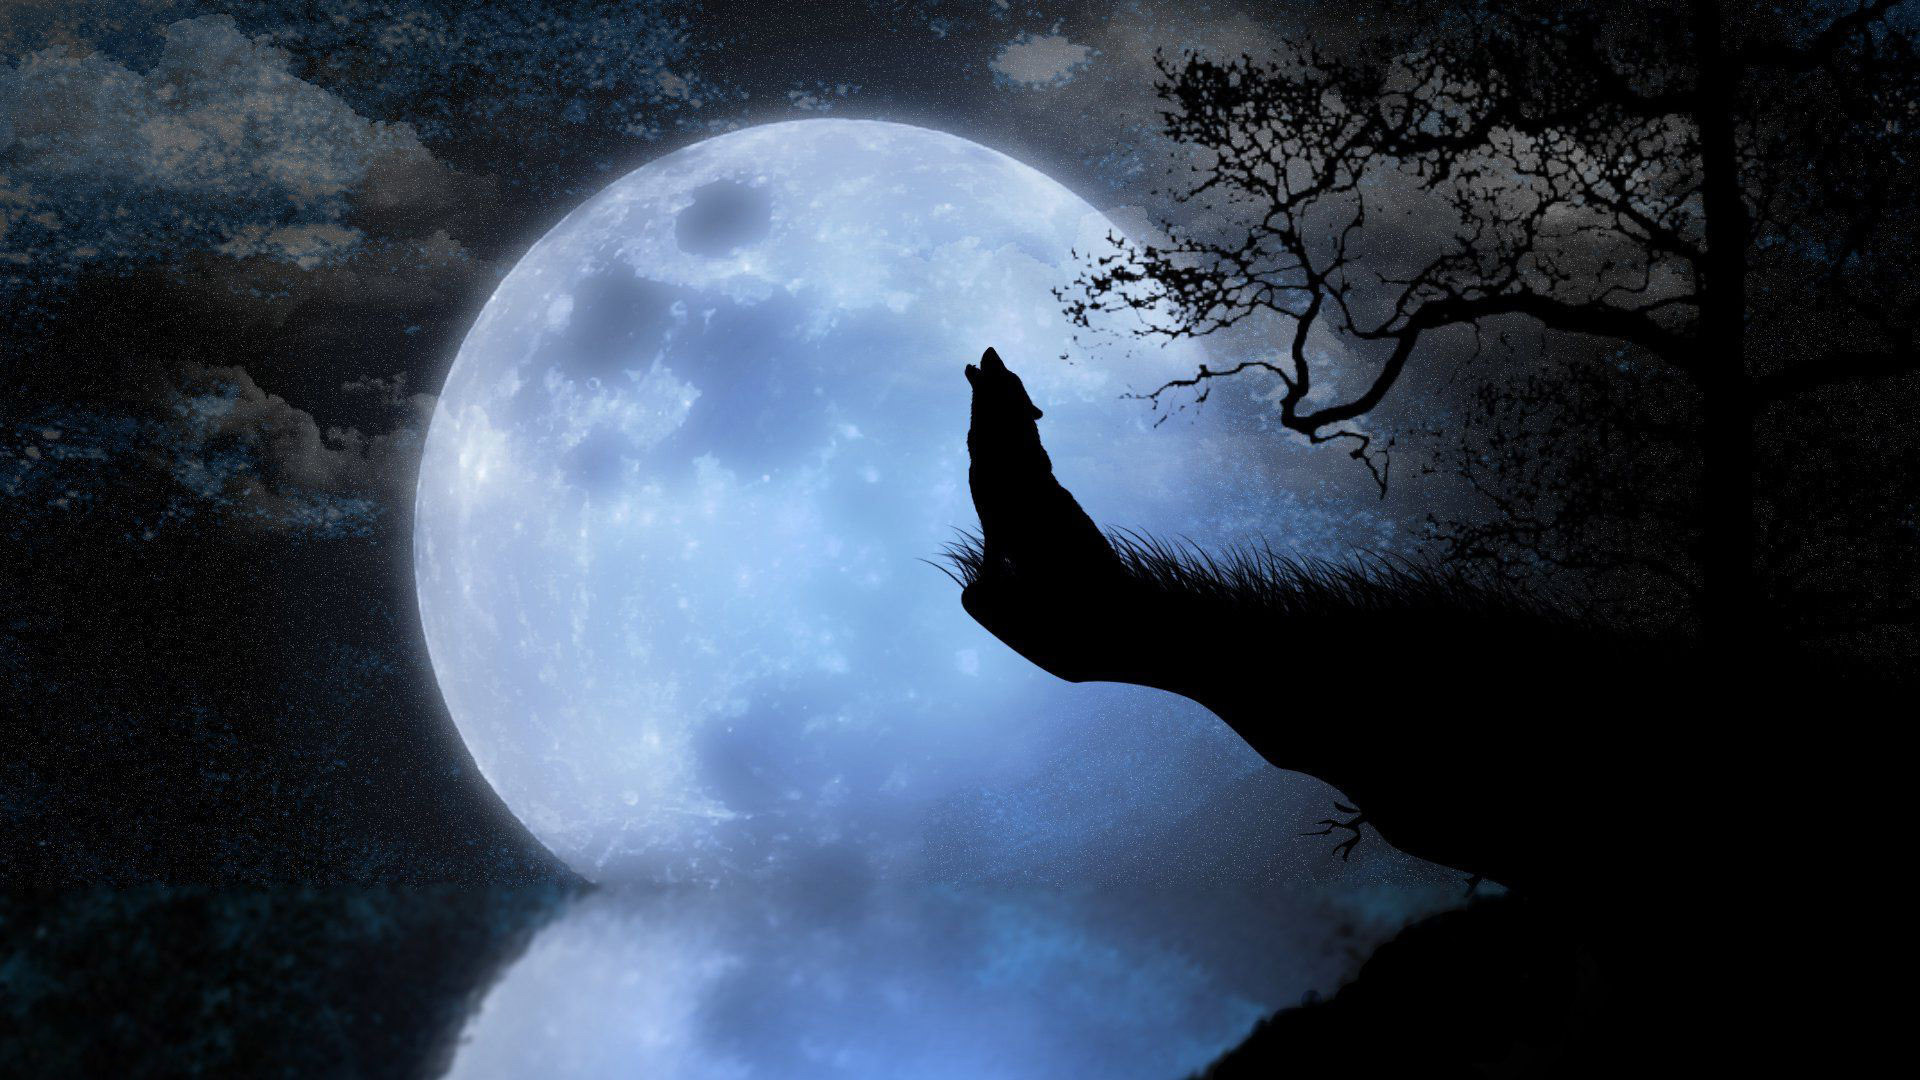 Howling Wolf Wallpapers Hd Wallpaper Collections 4kwallpaper Wiki